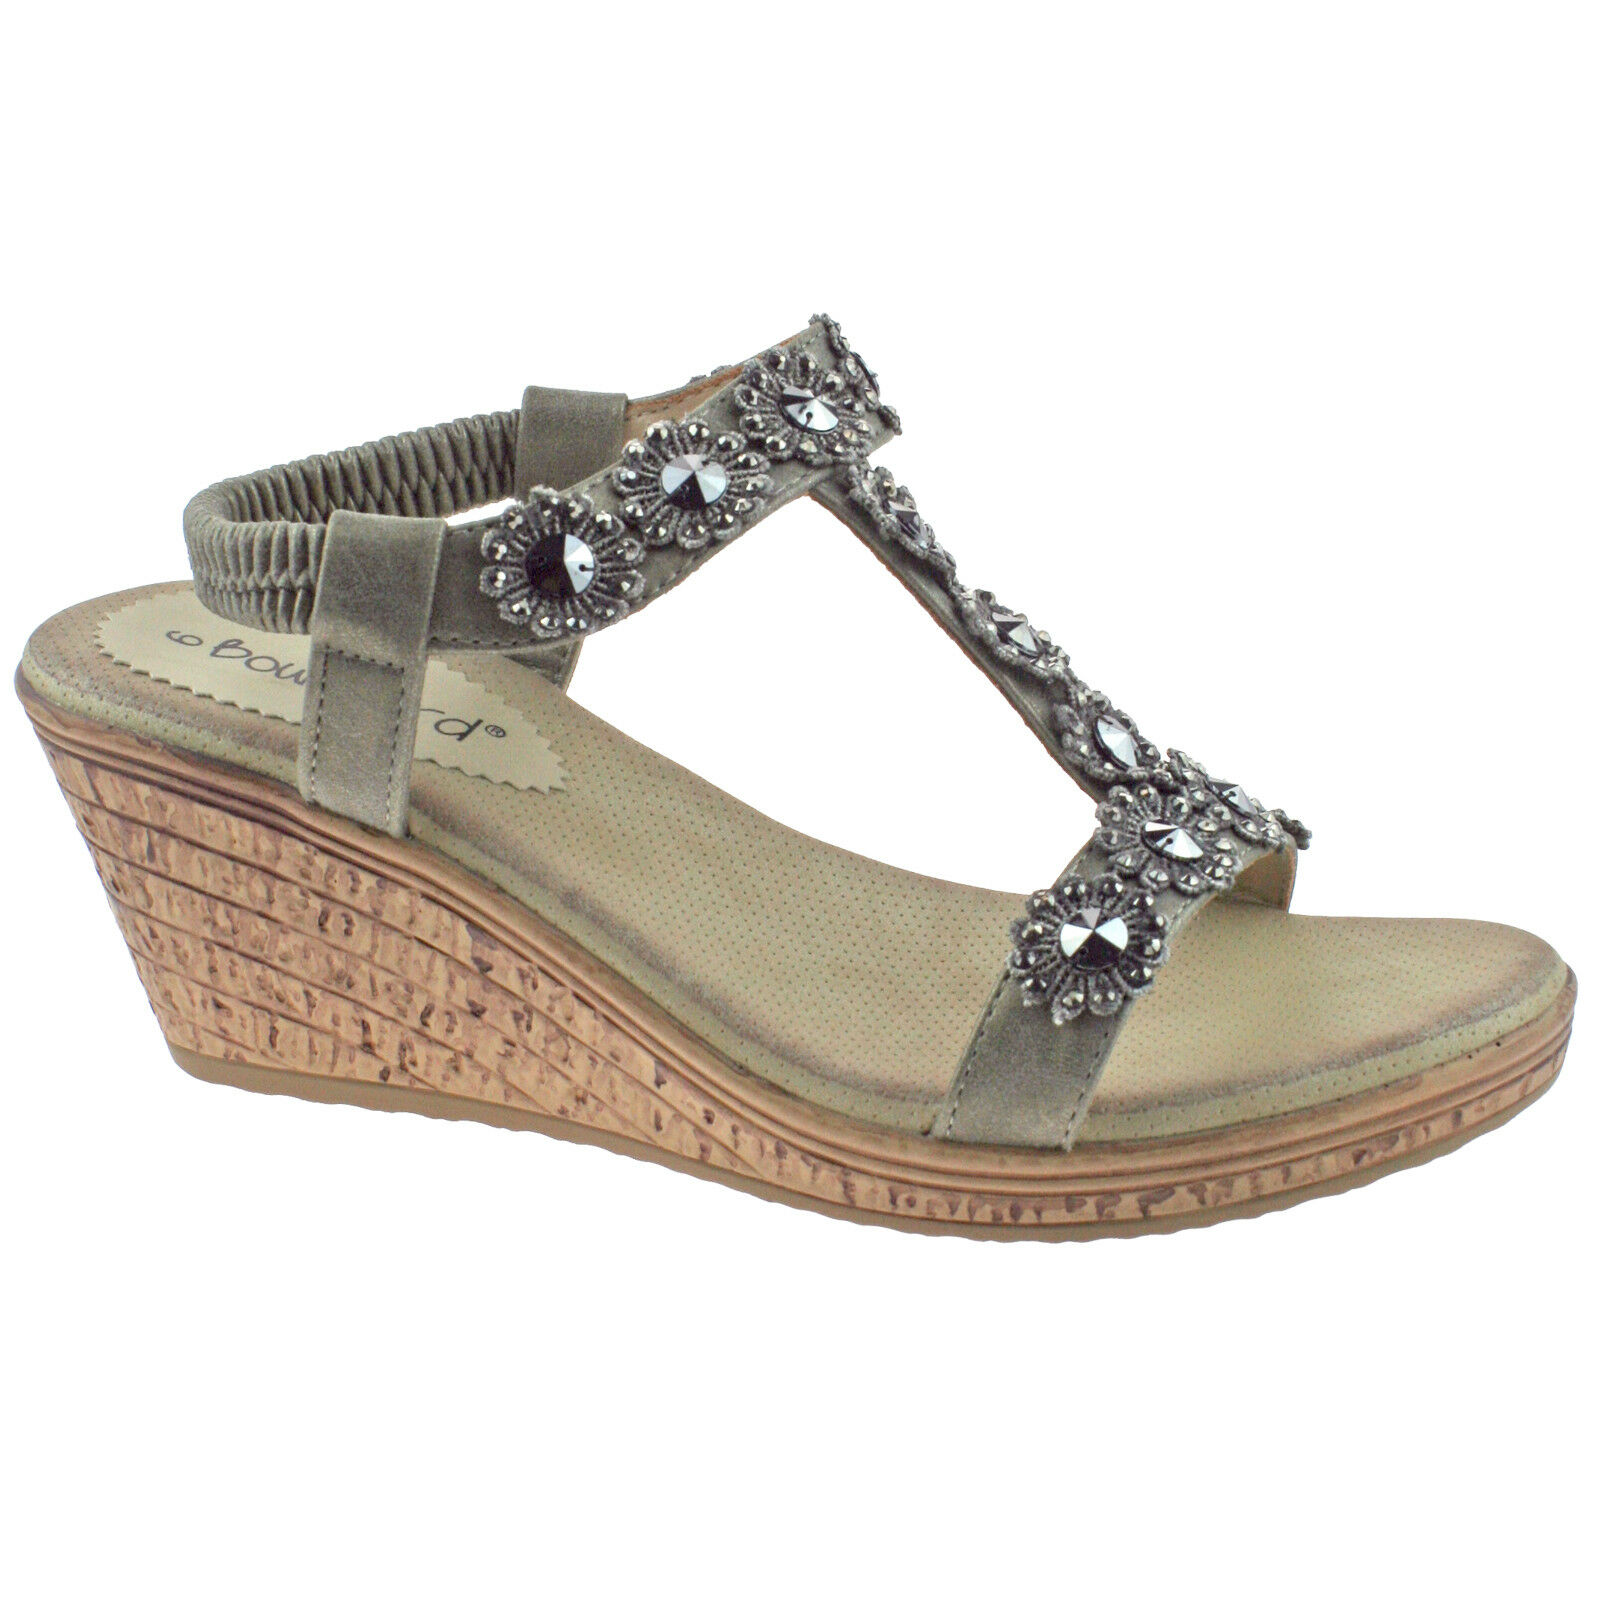 Ladies Summer Sandals Flower Diamante Elasticated Cushioned Holiday UK Sizes 4-8